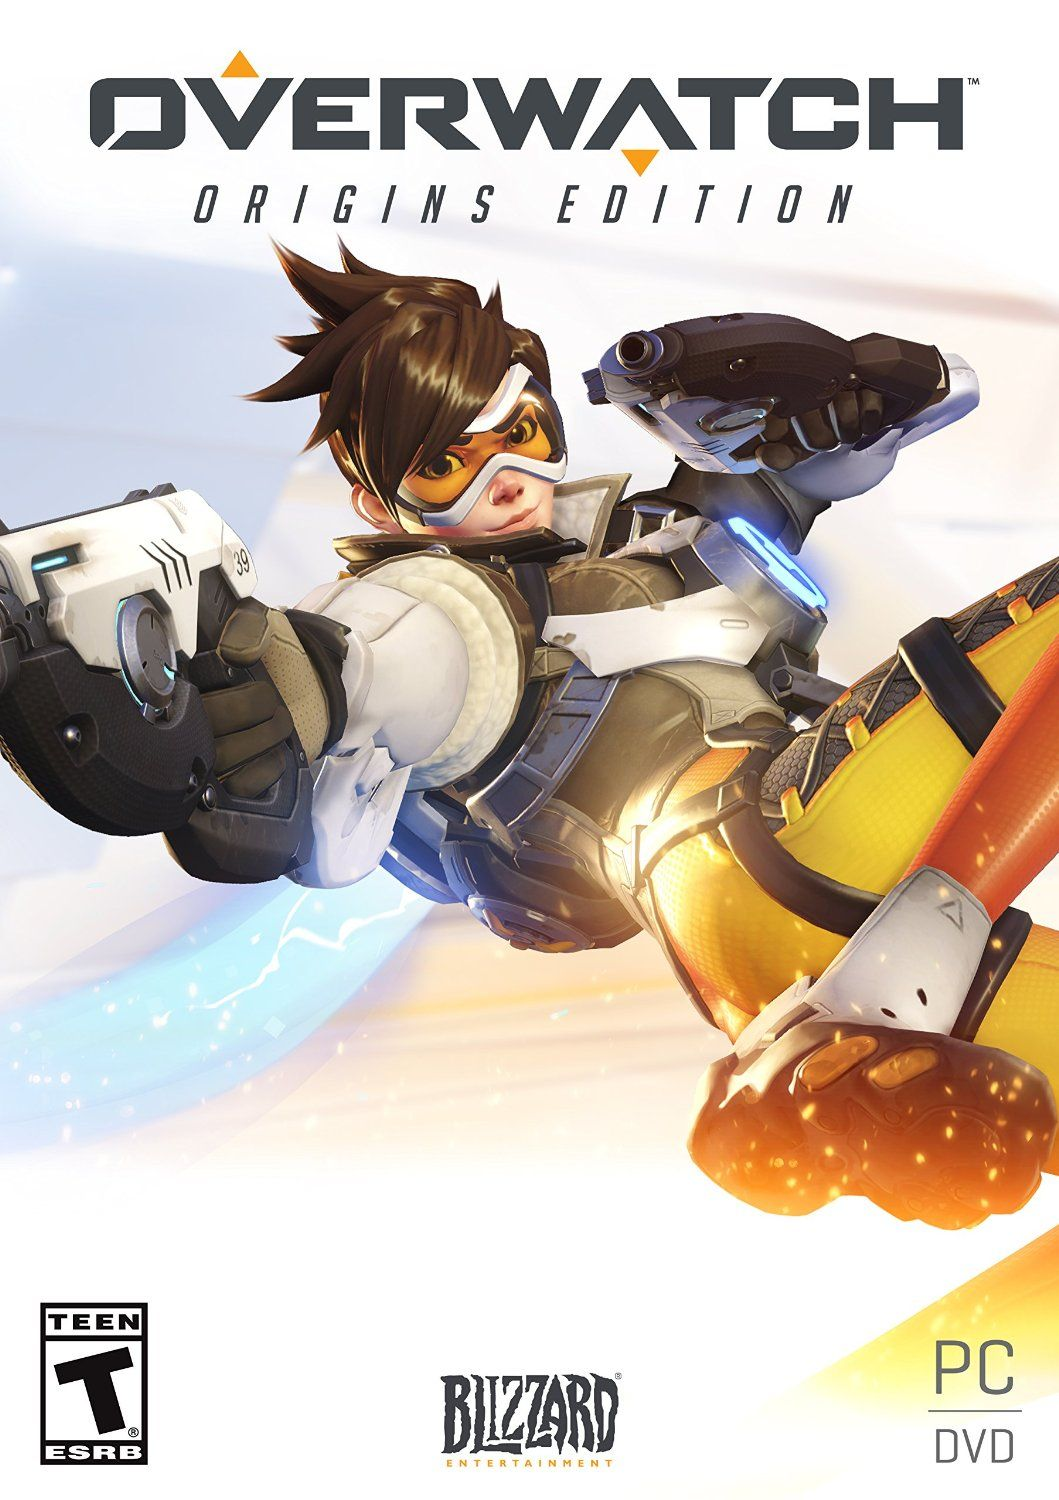 New Games Overwatch Ps4 Pc Xbox One With Images Overwatch Xbox Overwatch Video Game Xbox One Games